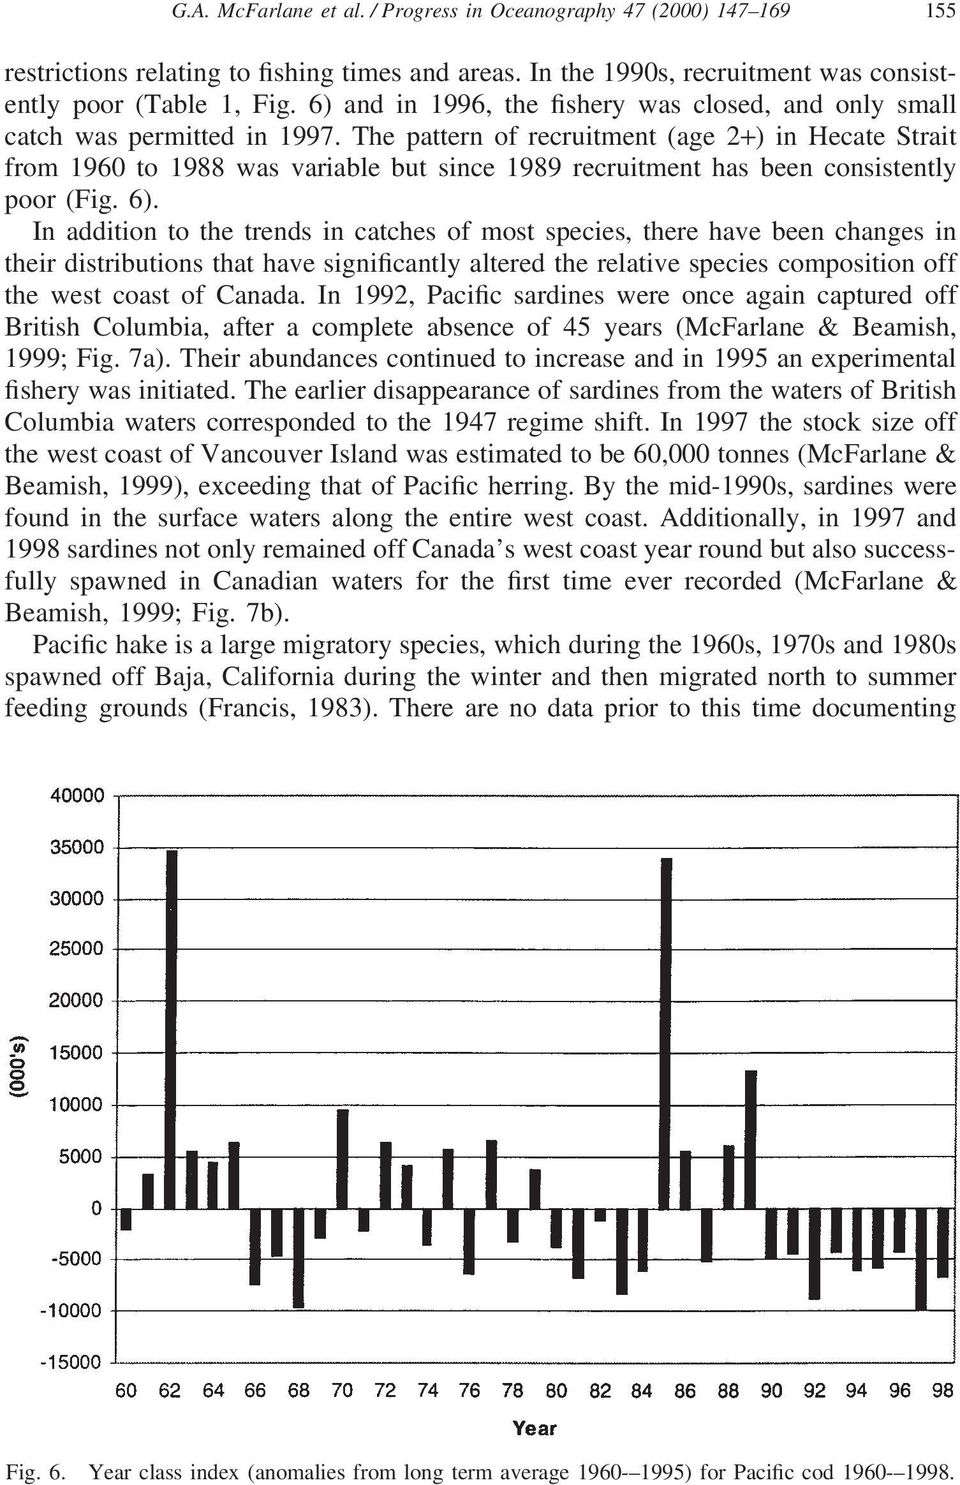 The pattern of recruitment (age 2+) in Hecate Strait from 1960 to 1988 was variable but since 1989 recruitment has been consistently poor (Fig. 6).